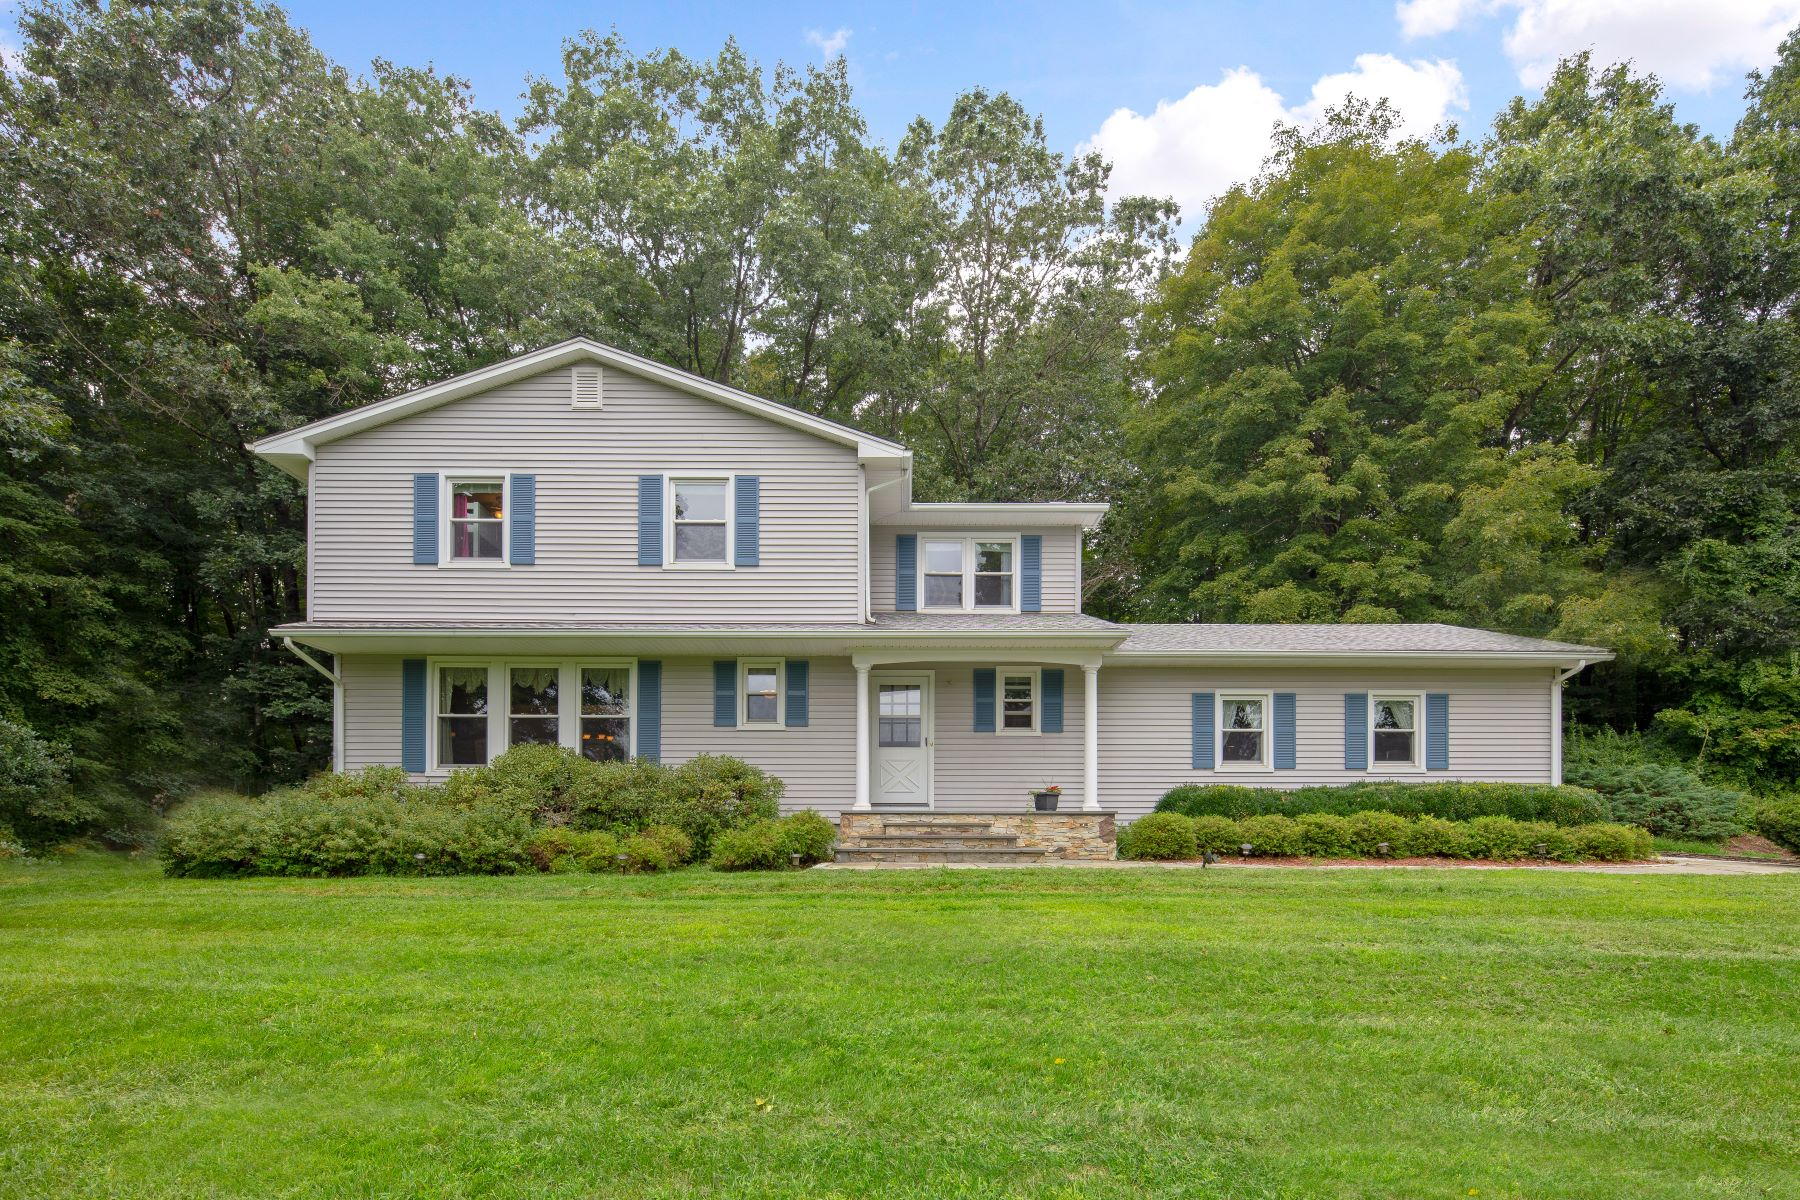 Single Family Homes for Sale at Stunning Custom Colonial 231 Aspetuck Ridge Road New Milford, Connecticut 06776 United States